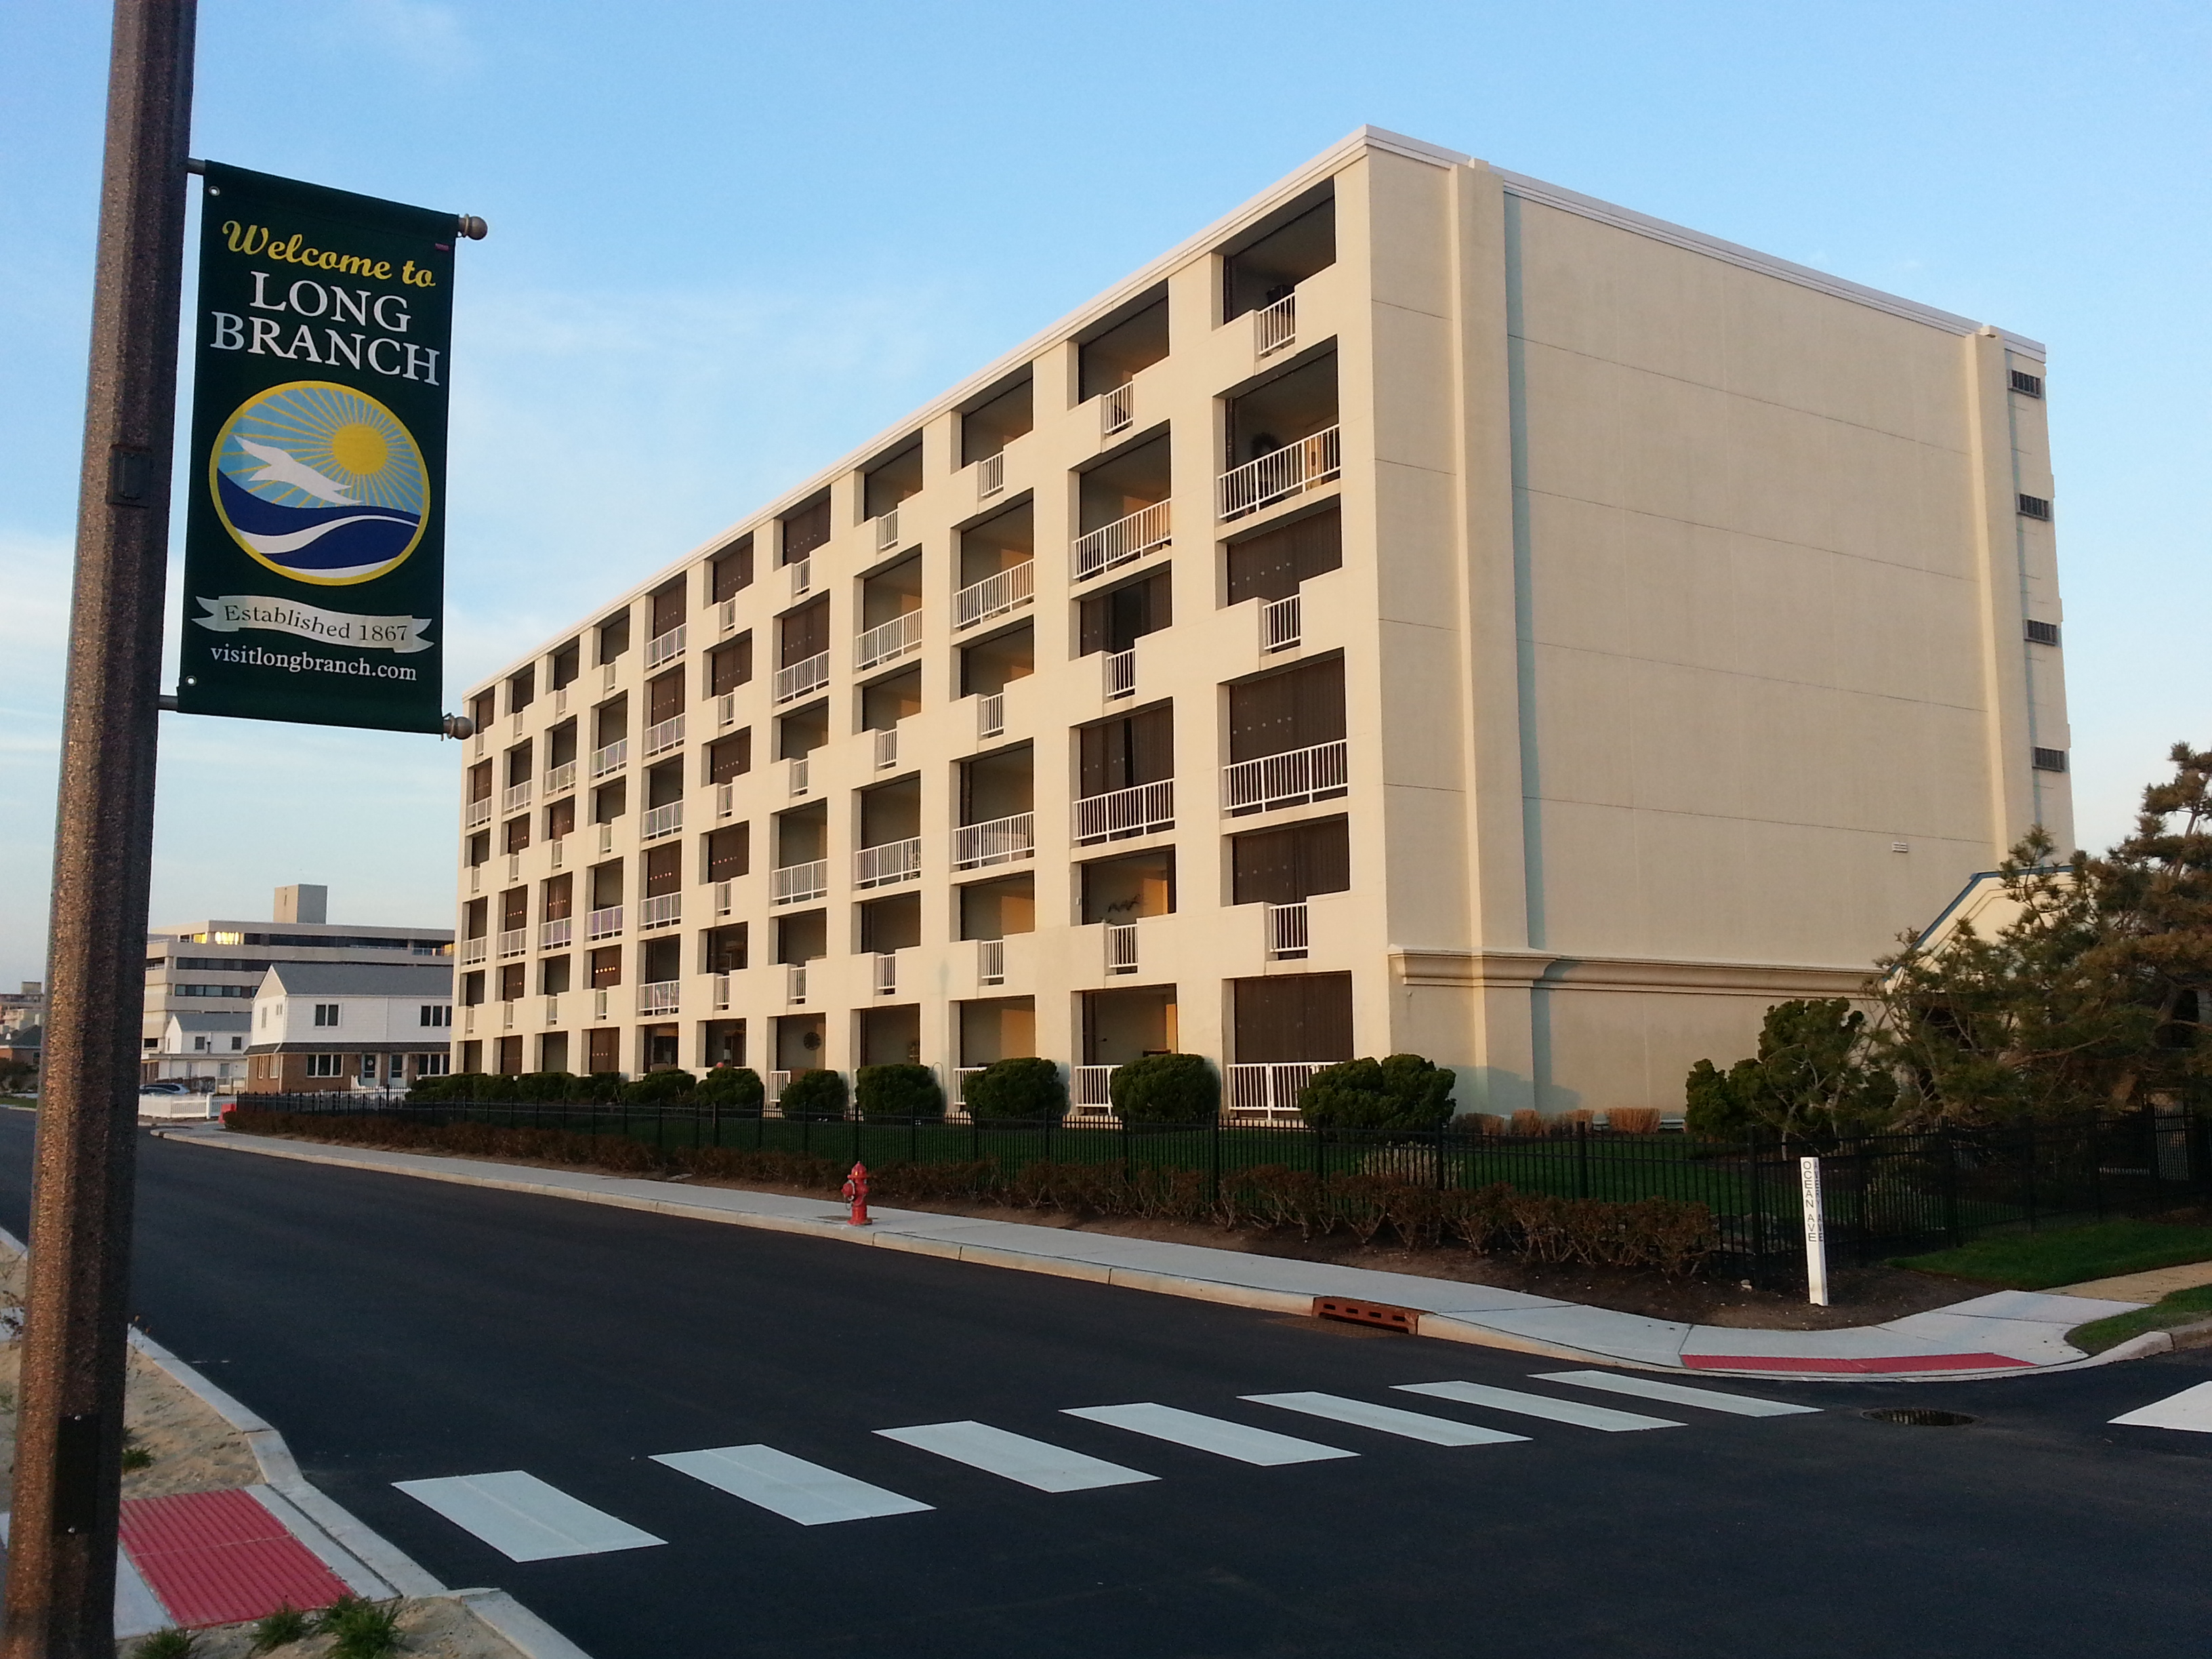 Ocean View Towers, located at 510 Ocean Ave, is right on the boardwalk in the West End Long Branch.